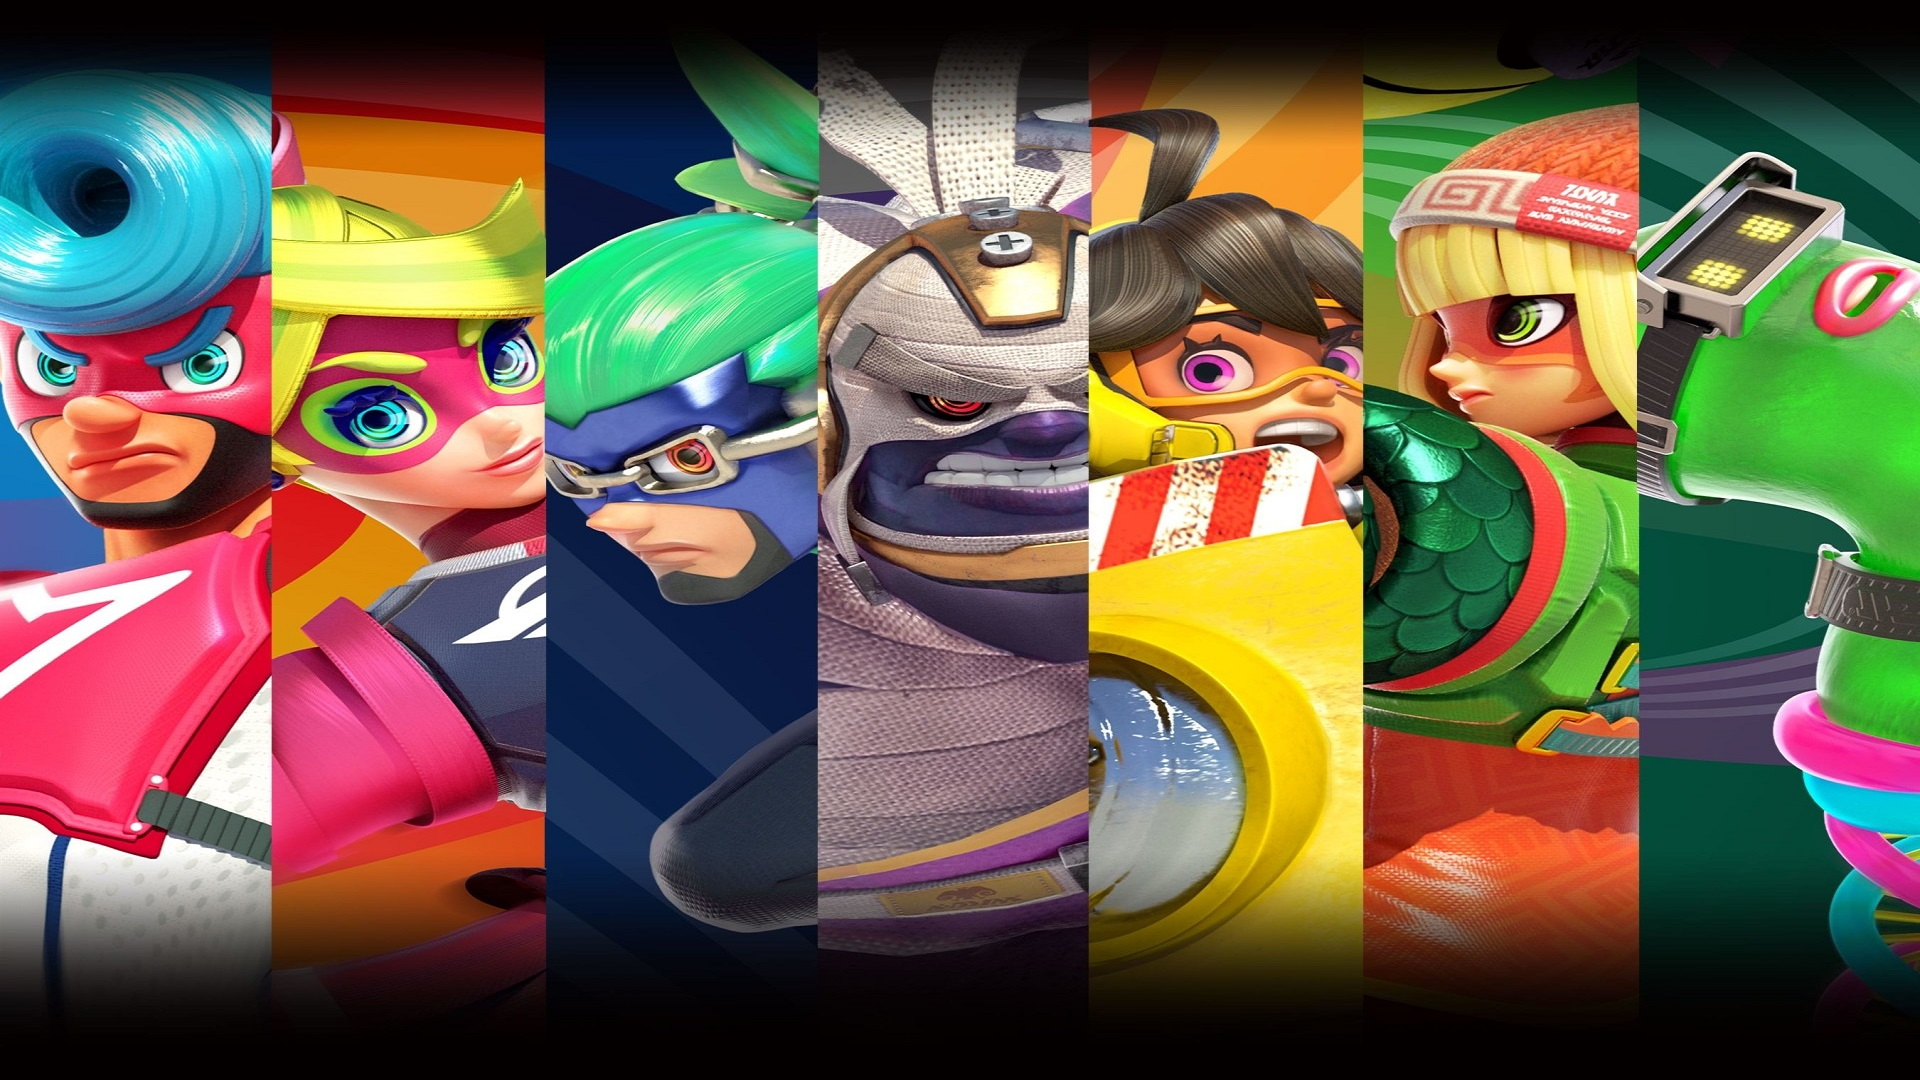 Background Images Read Games Review: Download Arms Video Game Hd Wallpapers